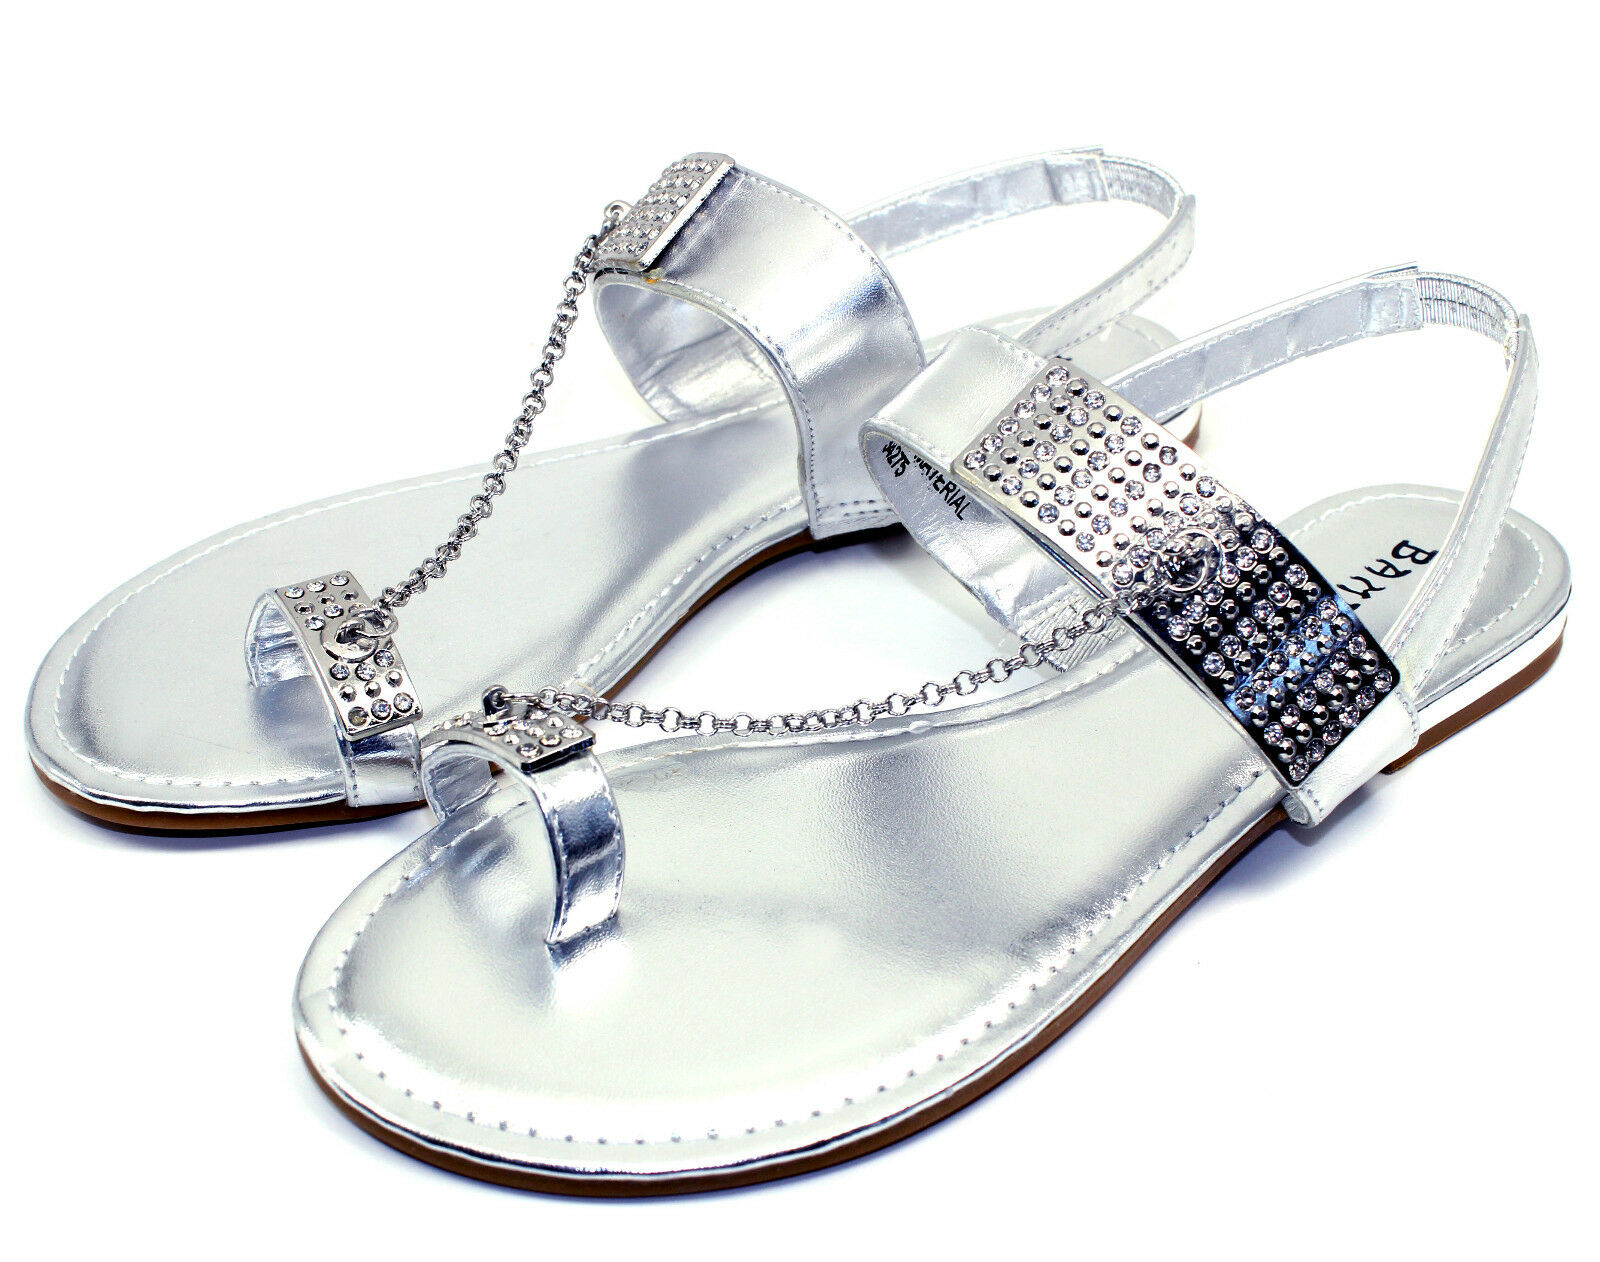 Ambra-77 Blink Chain Stone Flat Sandals Silver Gladiator Party Women Shoes Silver Sandals 6.5 eaecfe